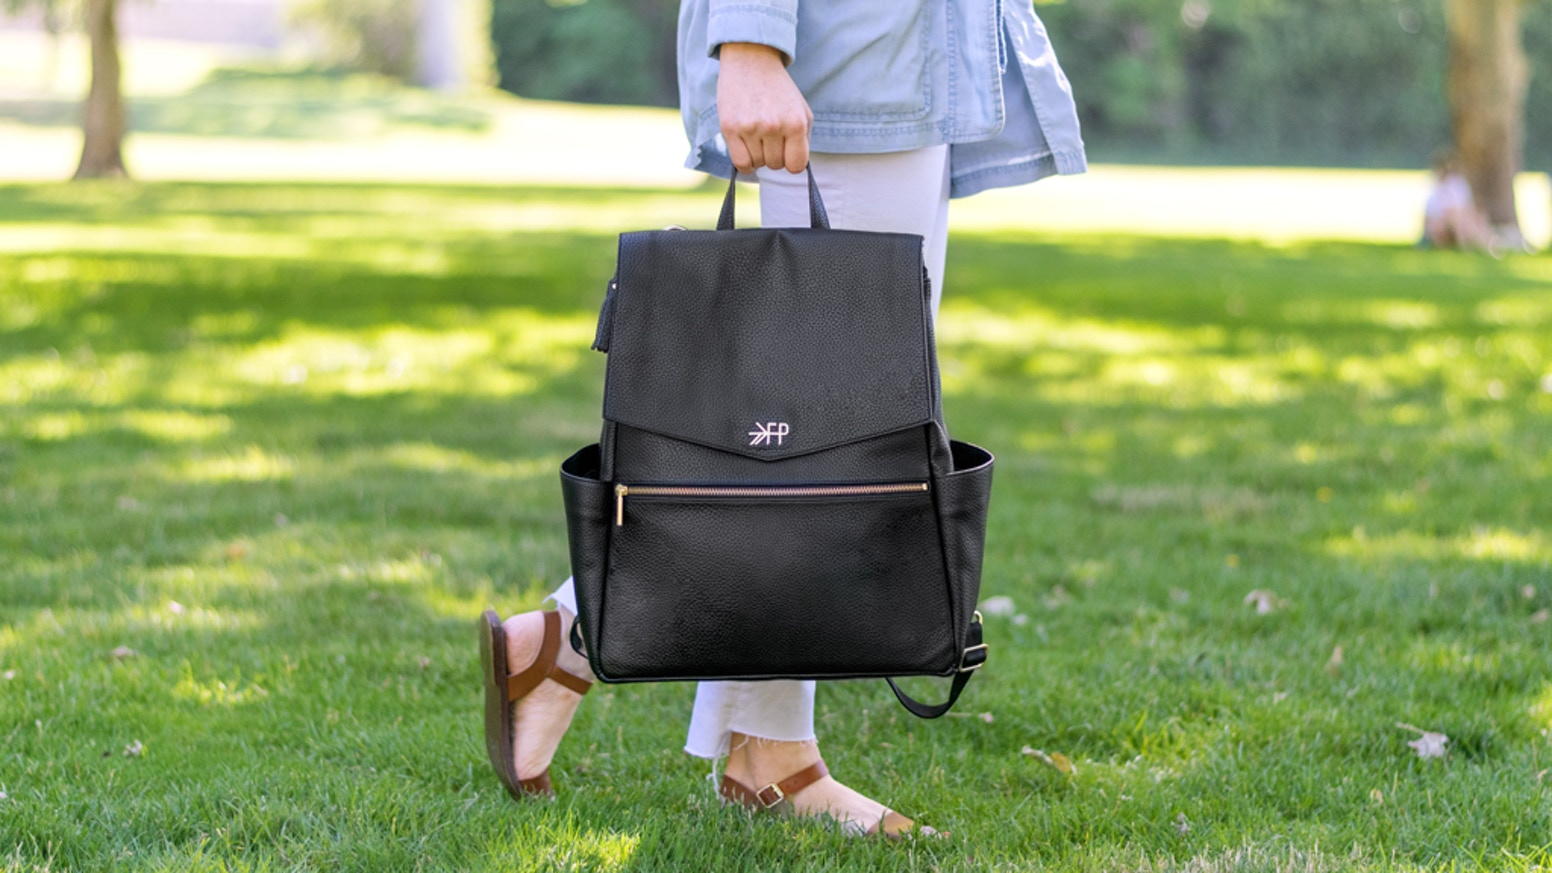 The diaper bags are entering production and will be available for purchase on freshlypicked.com and at Nordstrom in November. Can't wait to order yours? Pre-order on Indiegogo for $15 off retail price.